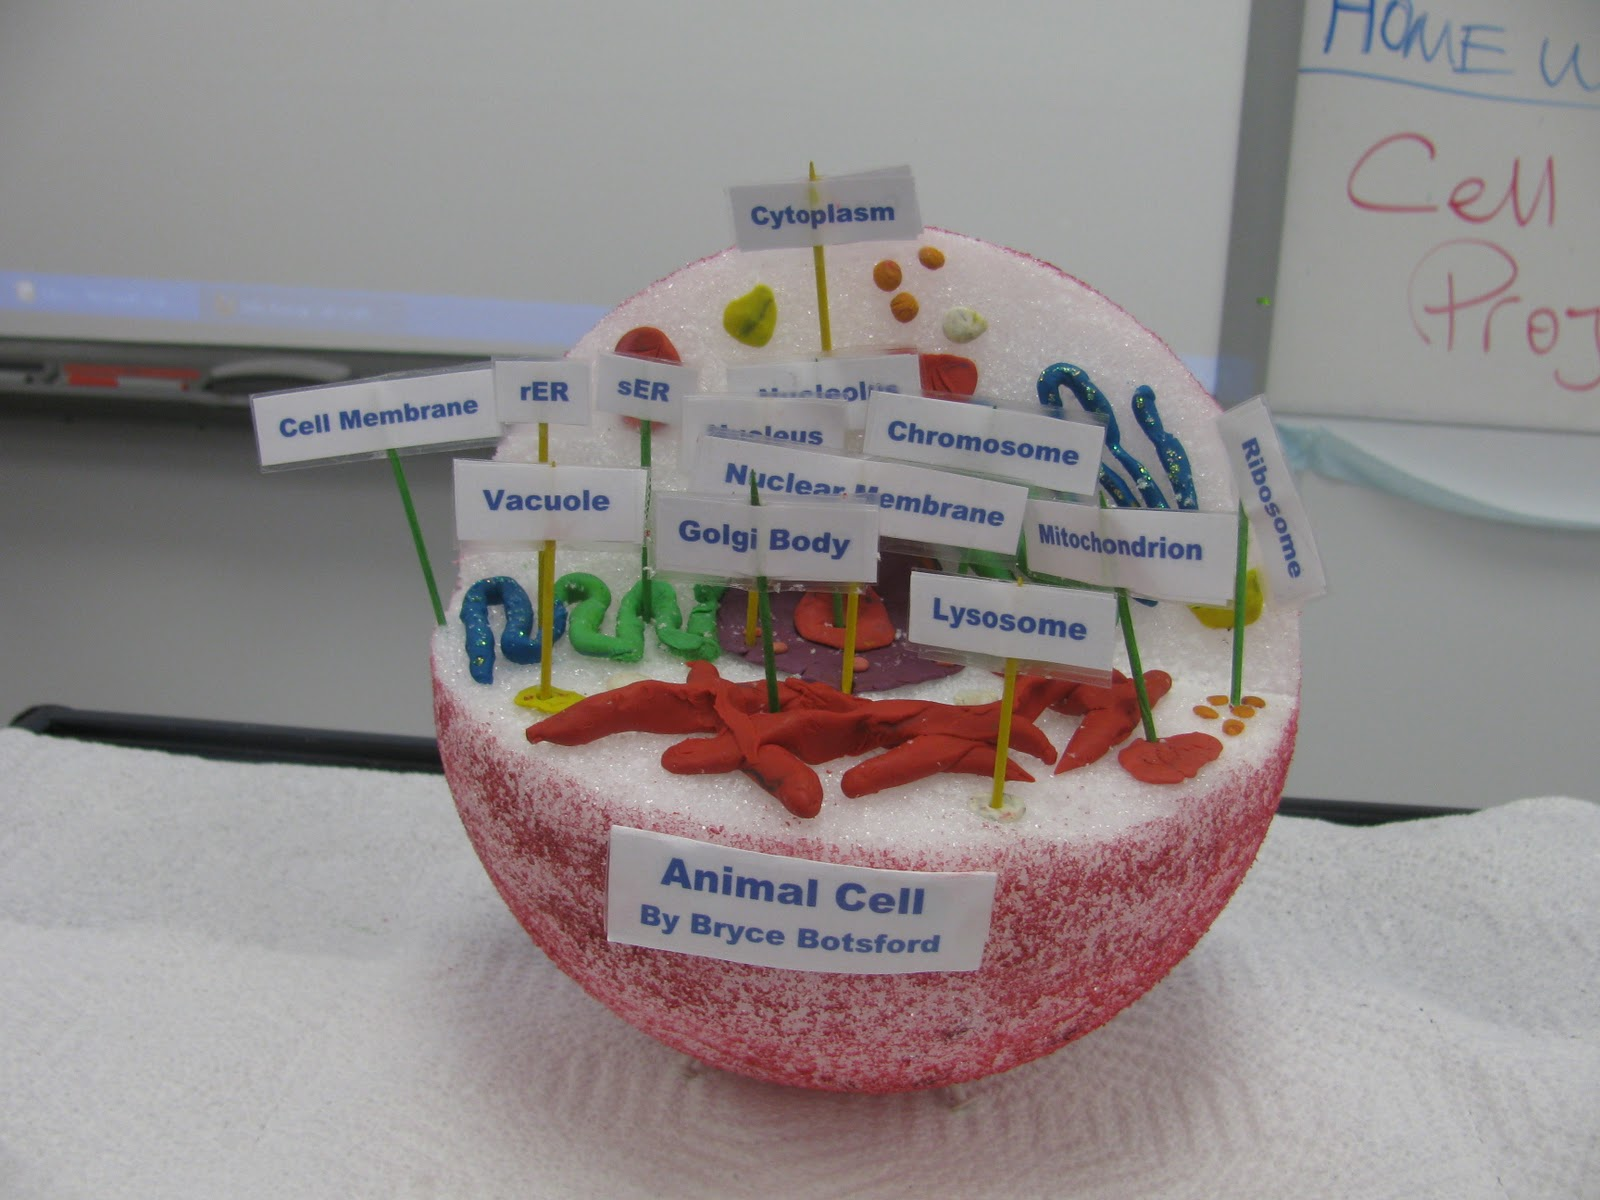 Plant Cell Diagram Project Ideas Iron Carbon Phase Silicon Ms Corson 39s Science Class September 2011